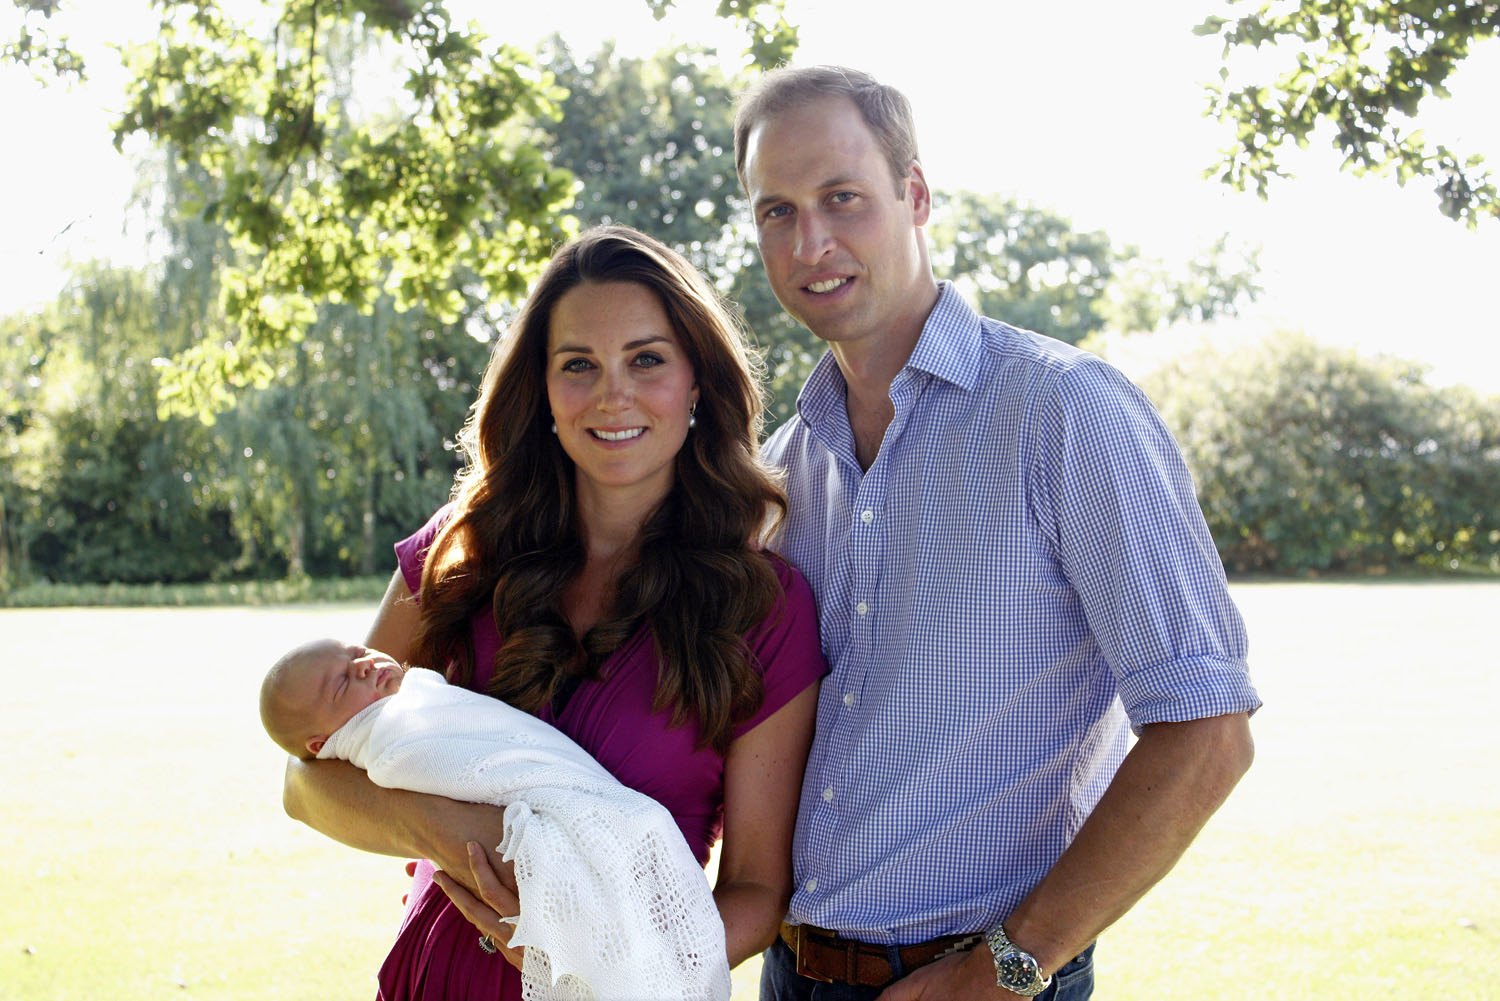 Catherine, Duchess of Cambridge and Prince William, Duke of Cambridge pose for a photograph with their son, Prince George Alexander Louis of Cambridge in the garden of the Middleton family home in August, 2013, in Bucklebury, Berkshire.